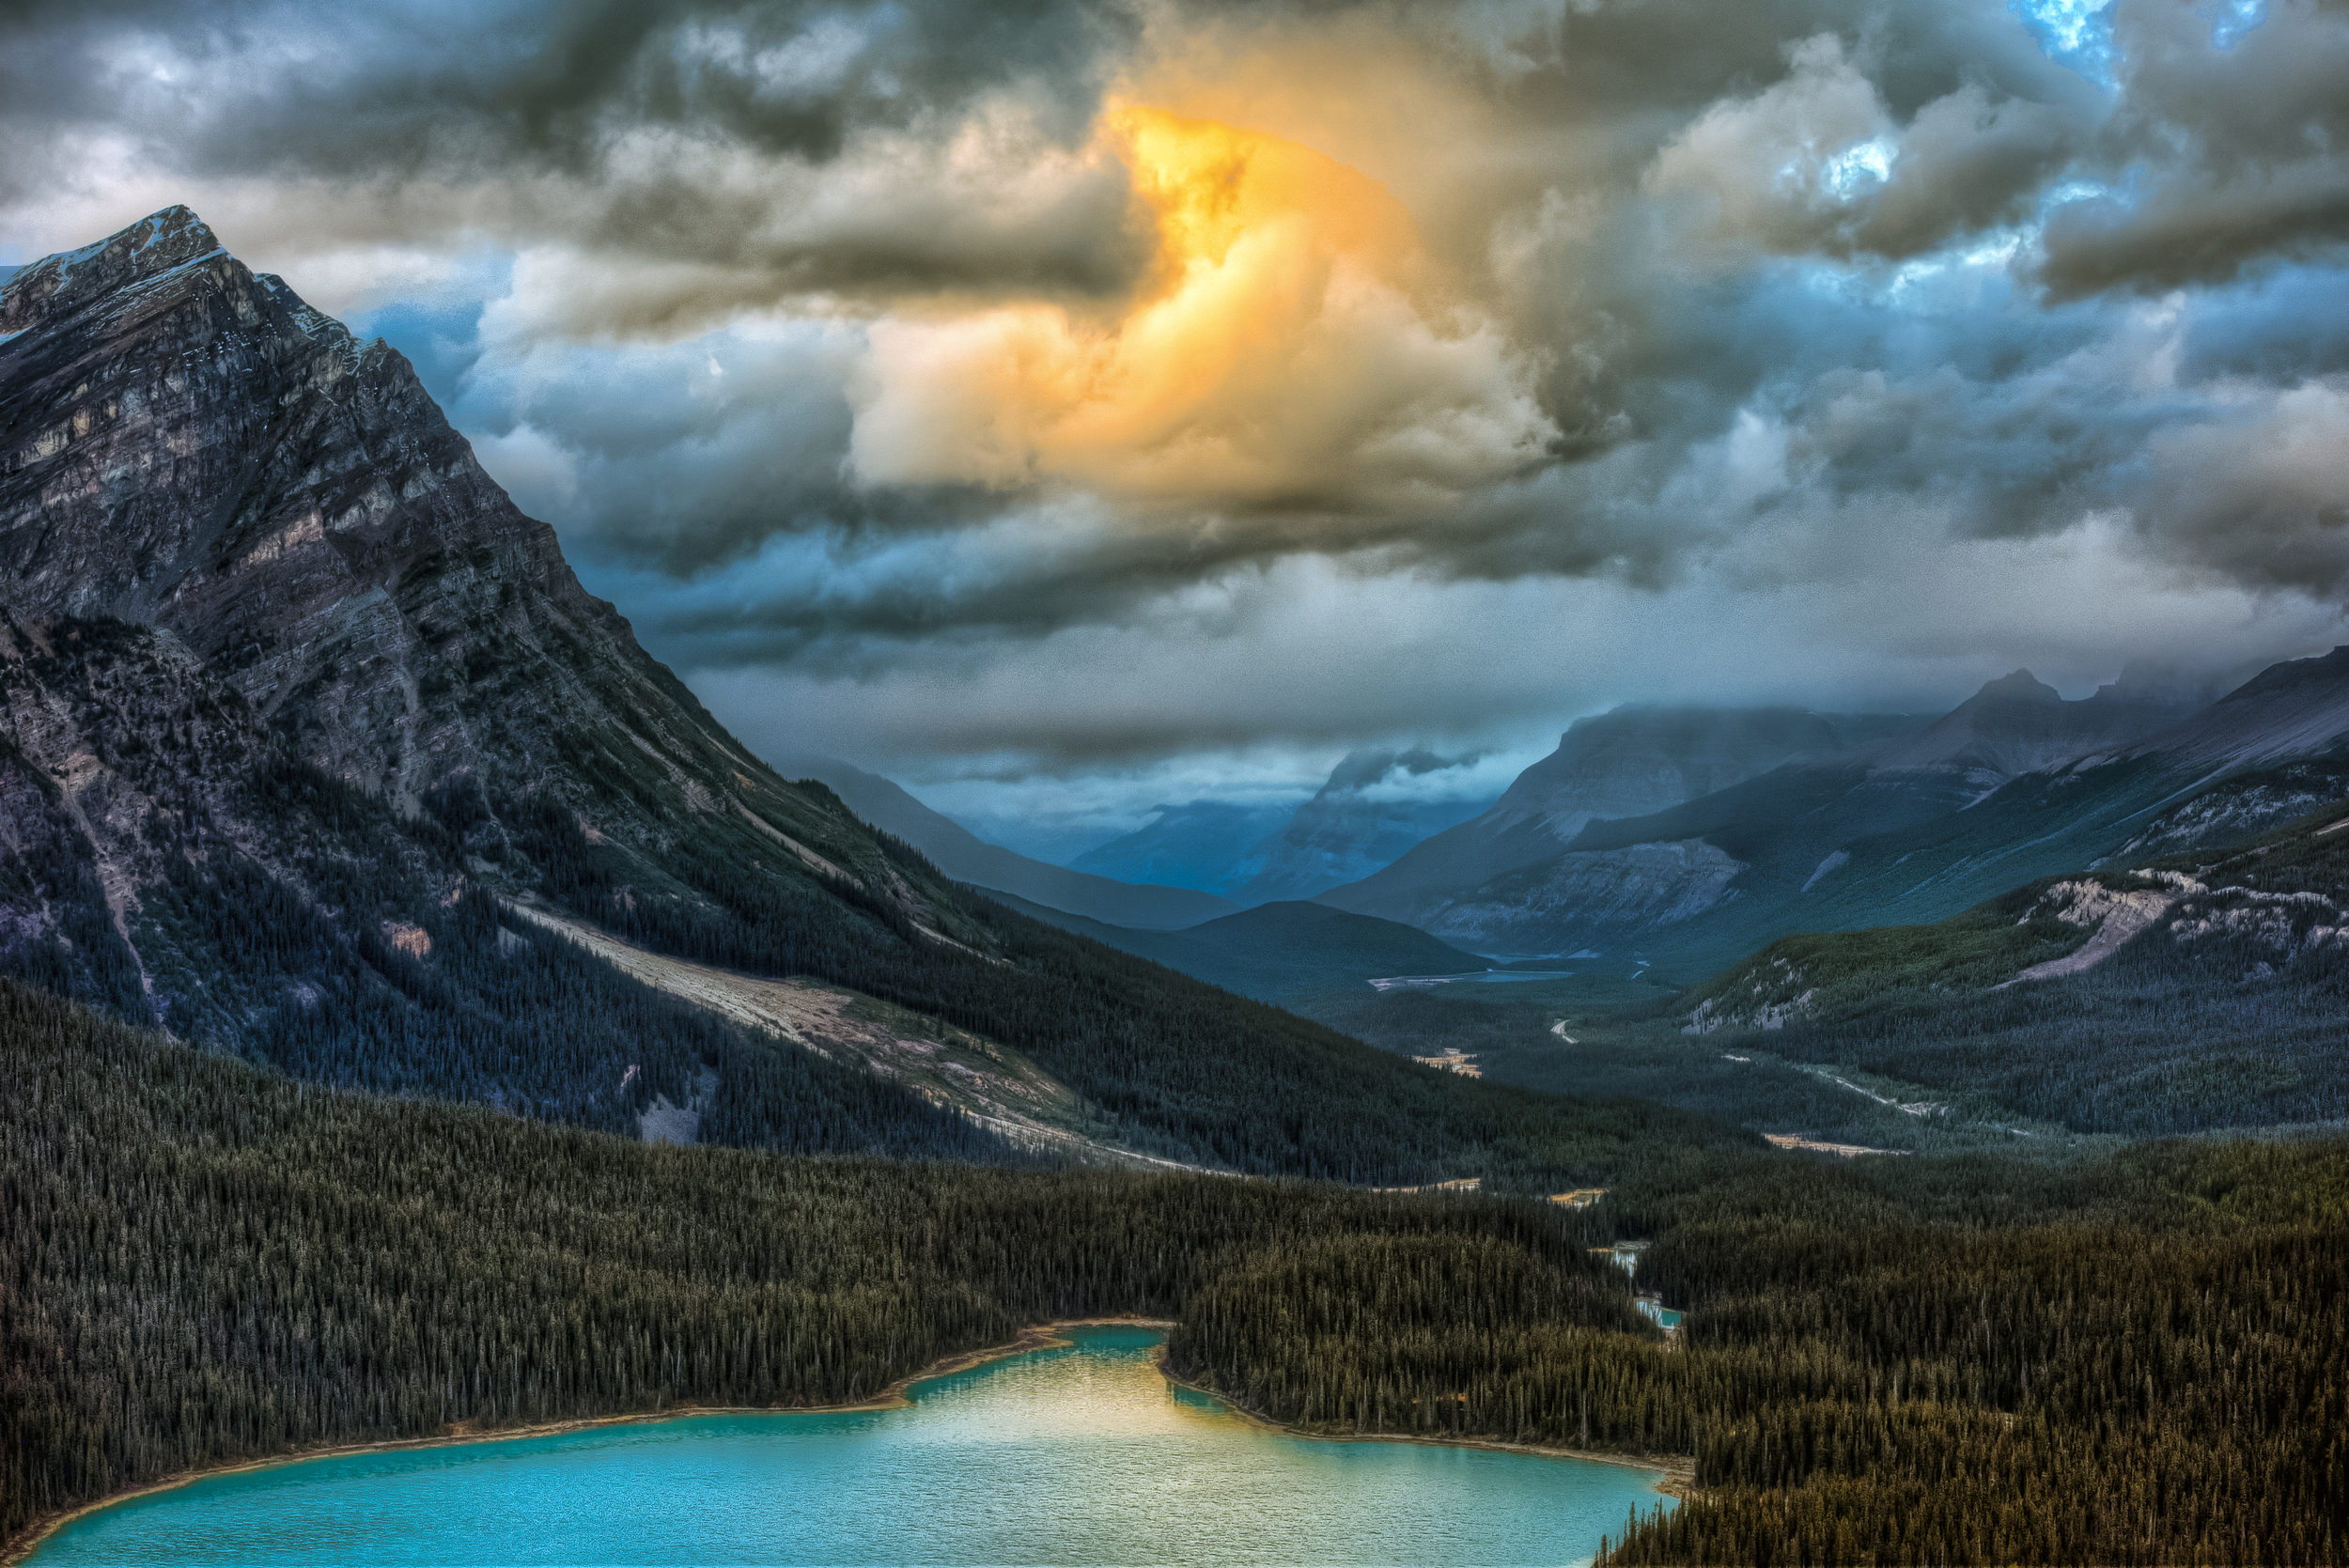 Way up the Icefields Parkway and a short hike up a hill, Alberta